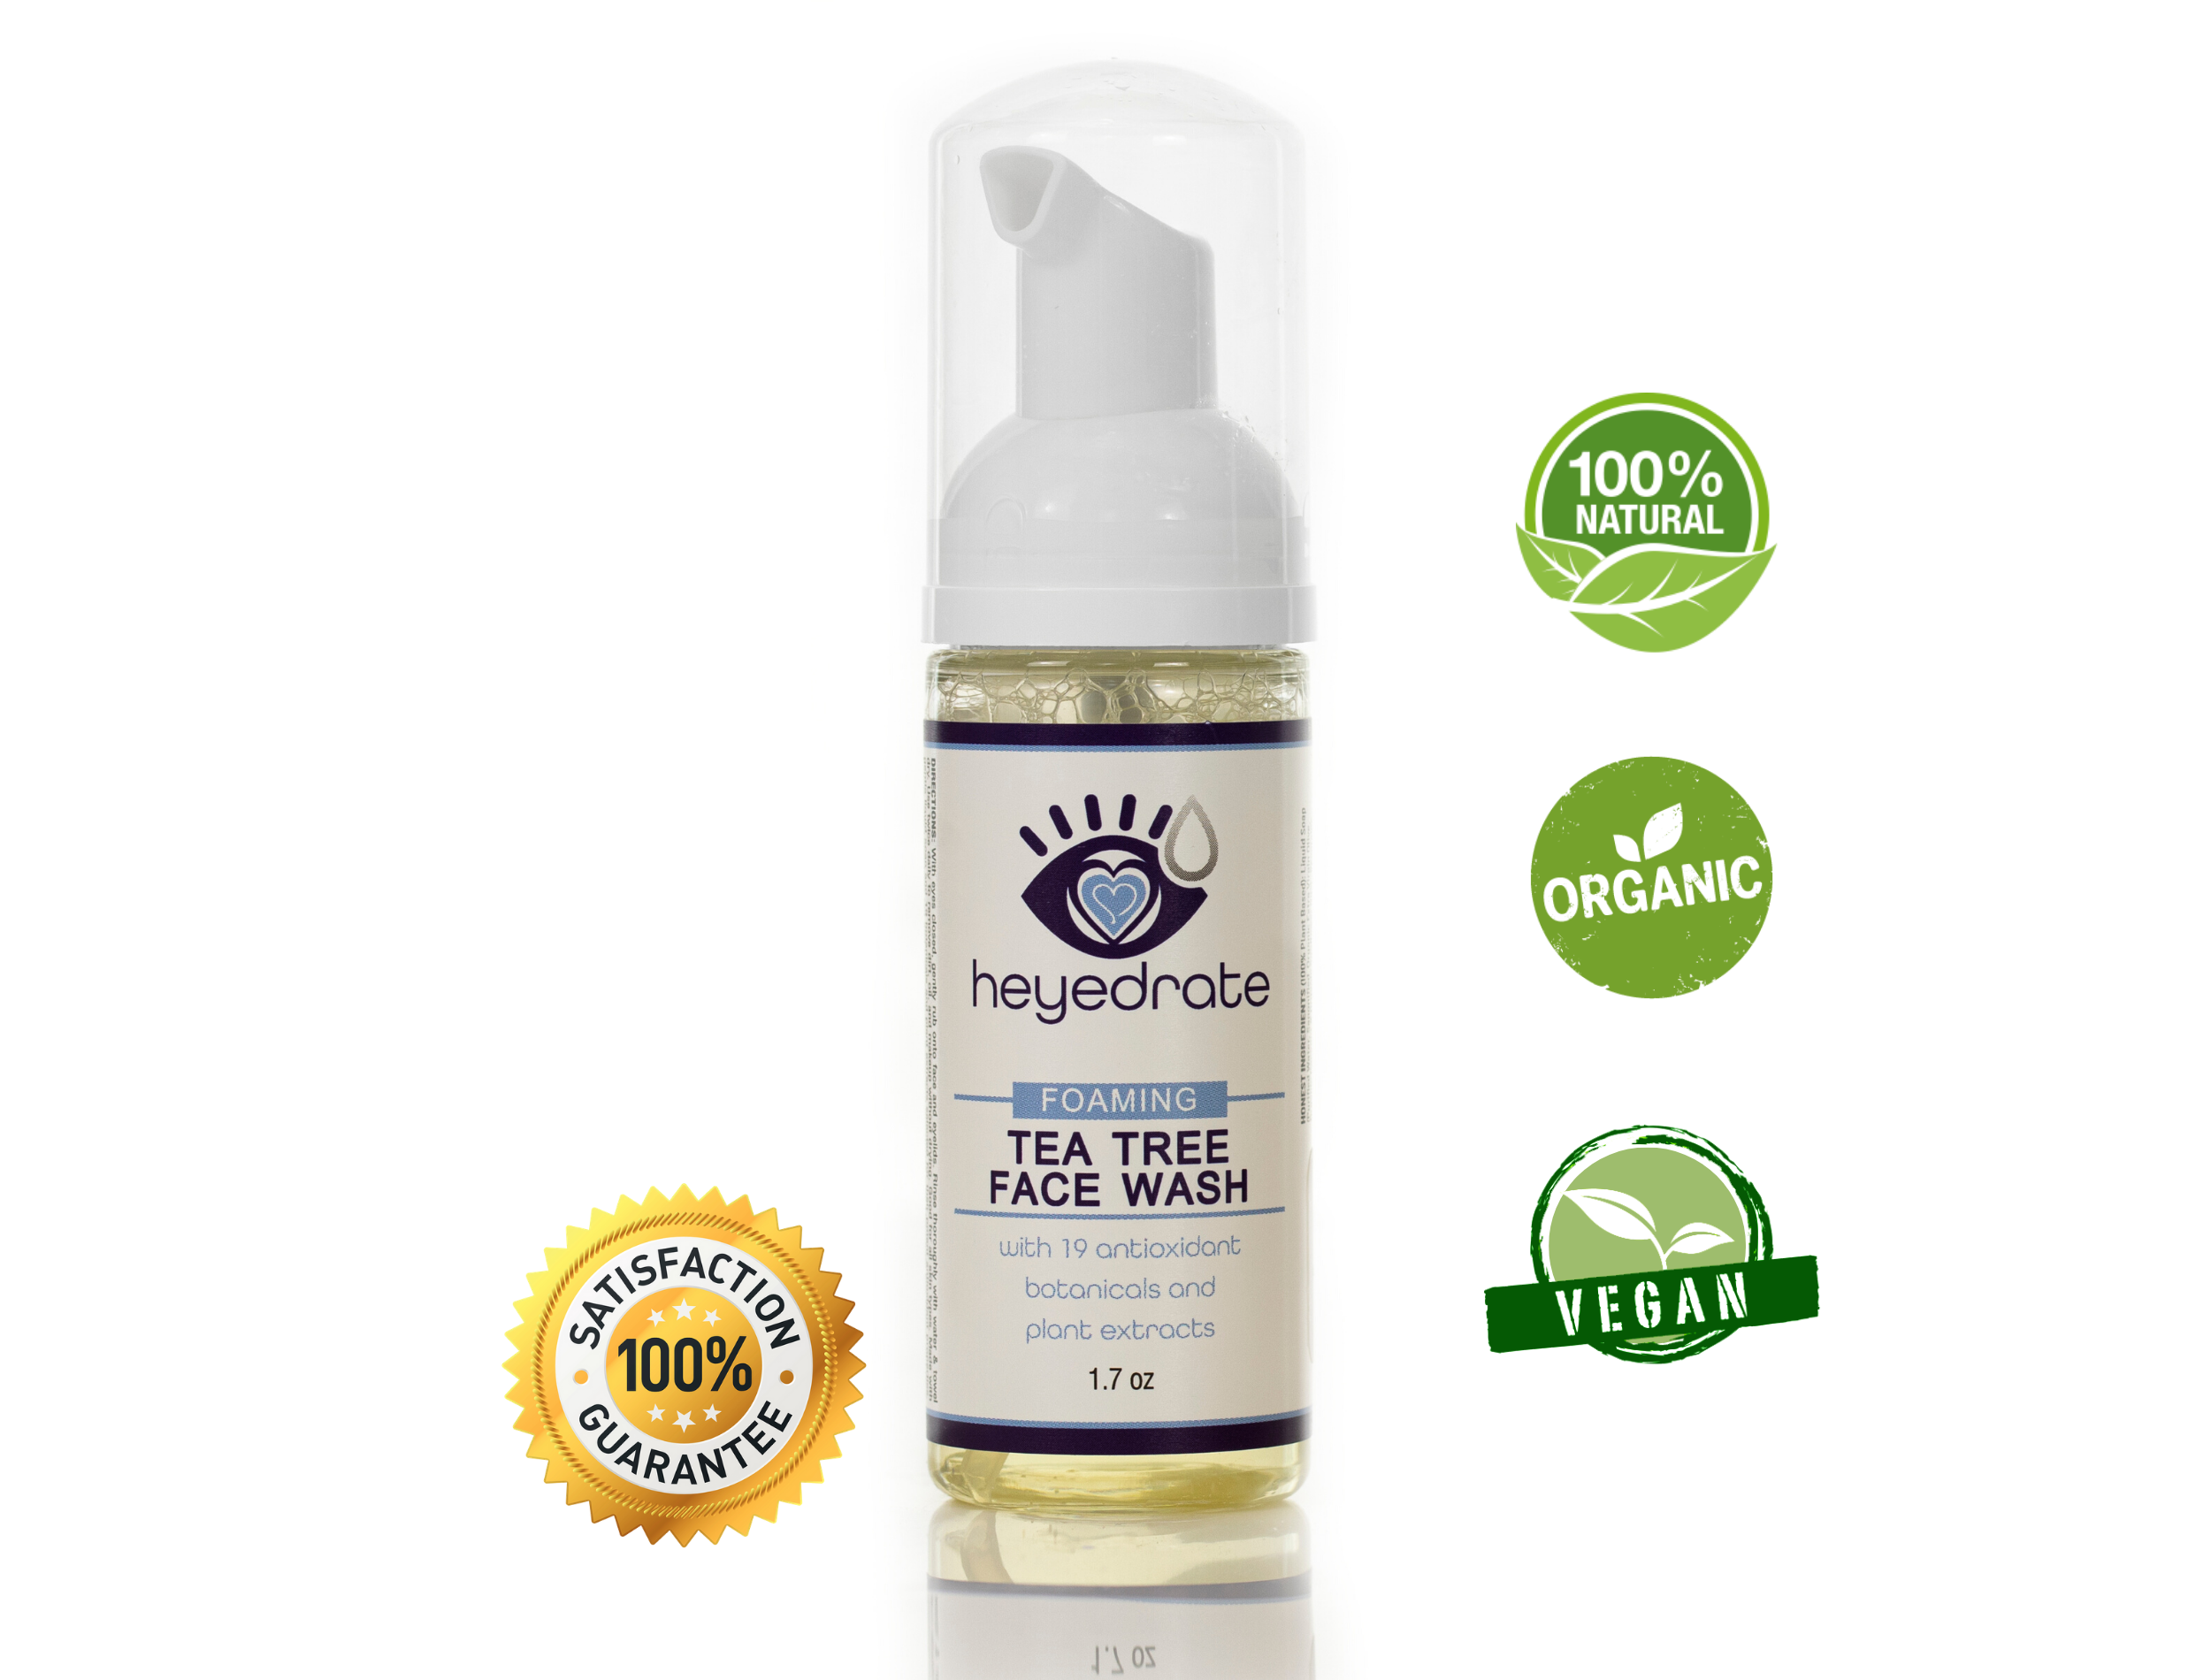 Eye Love announces the launch of their new foaming tea tree face wash and eyelid cleanser